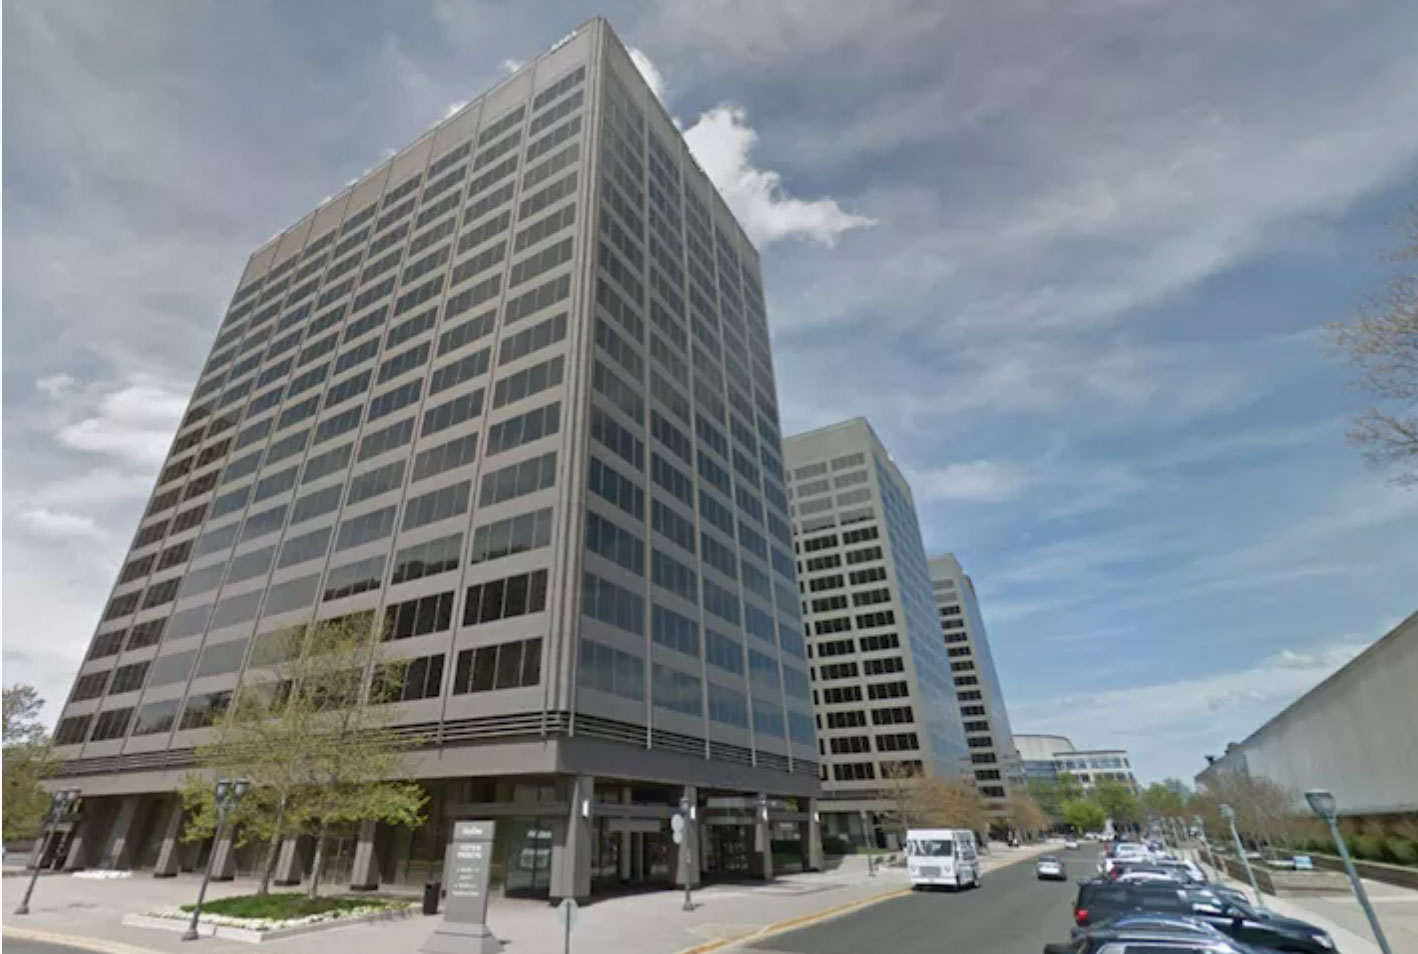 Fairfax Approves Conversion Of 3 Skyline Office Buildings To Live-Work Units